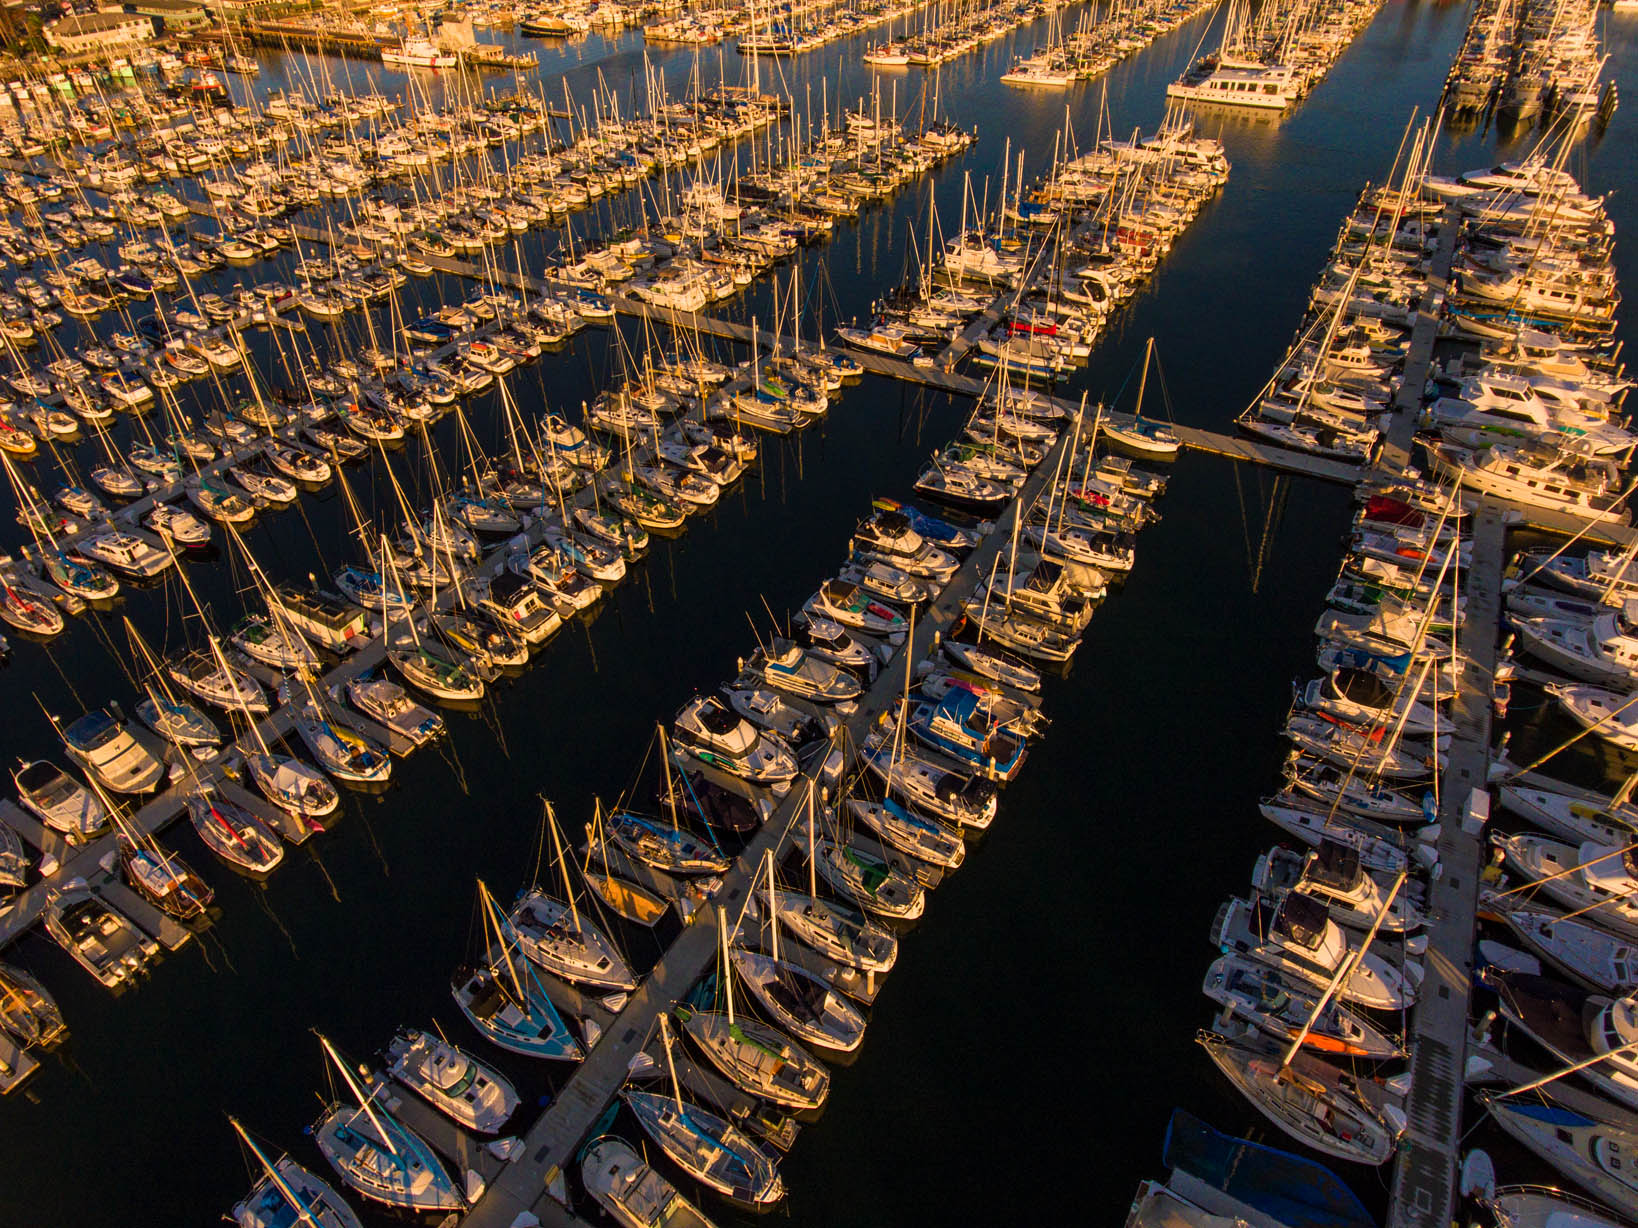 Aerial_Santa_Barbara_Harbor1